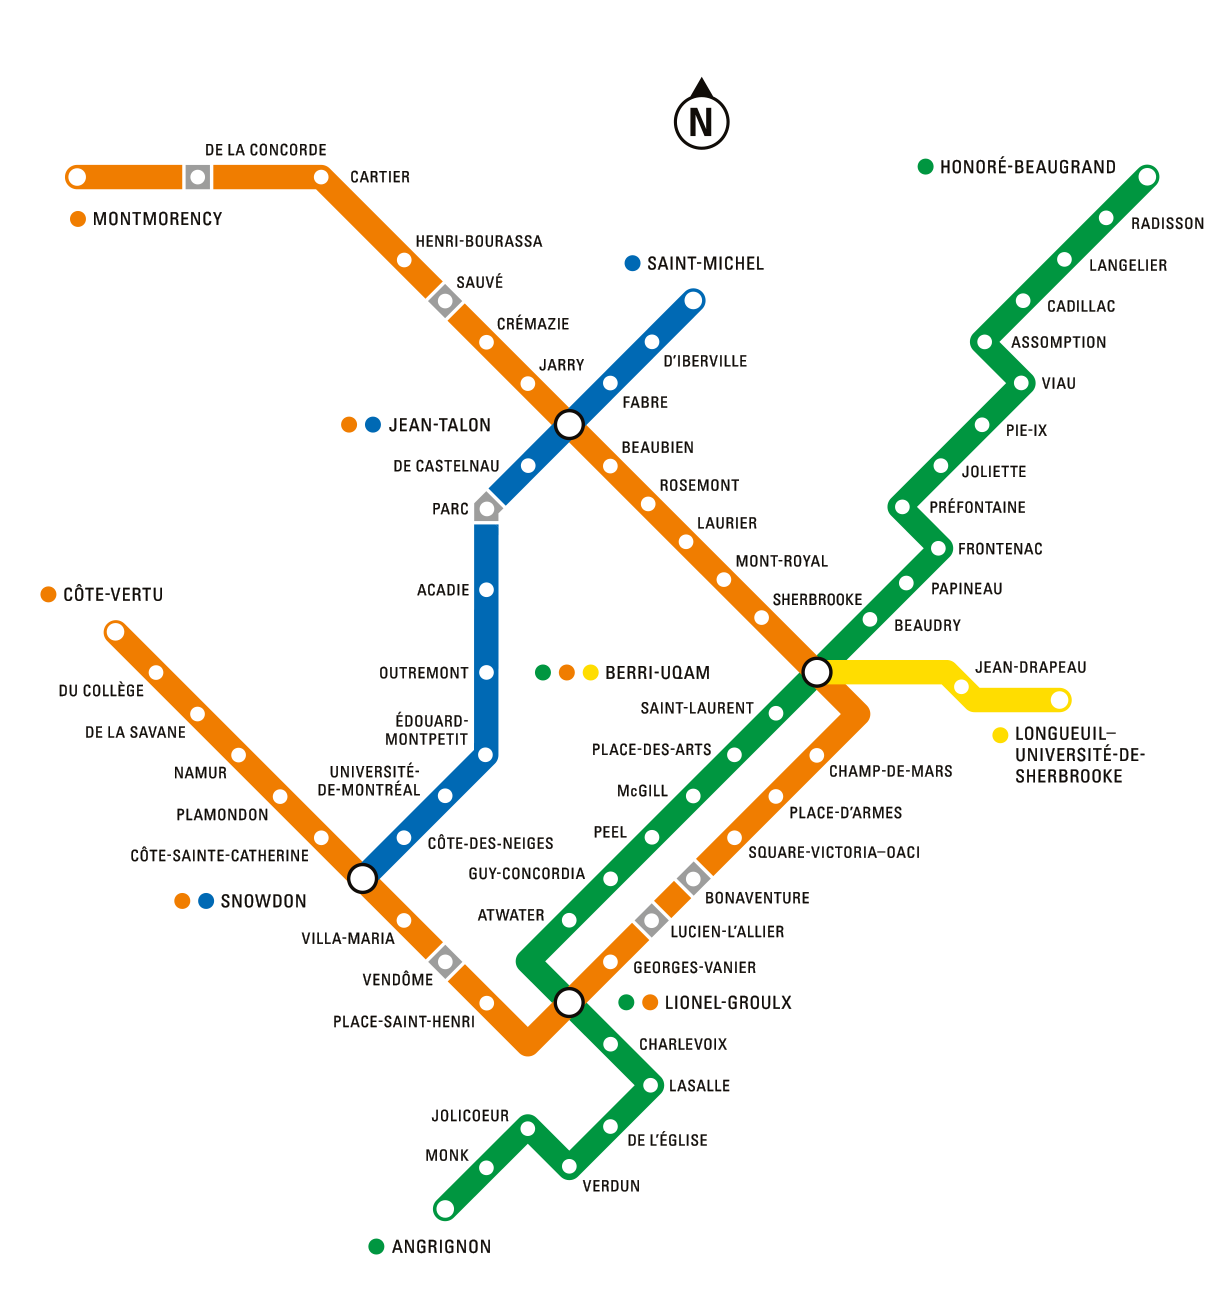 Metro montreal carte interactive STM